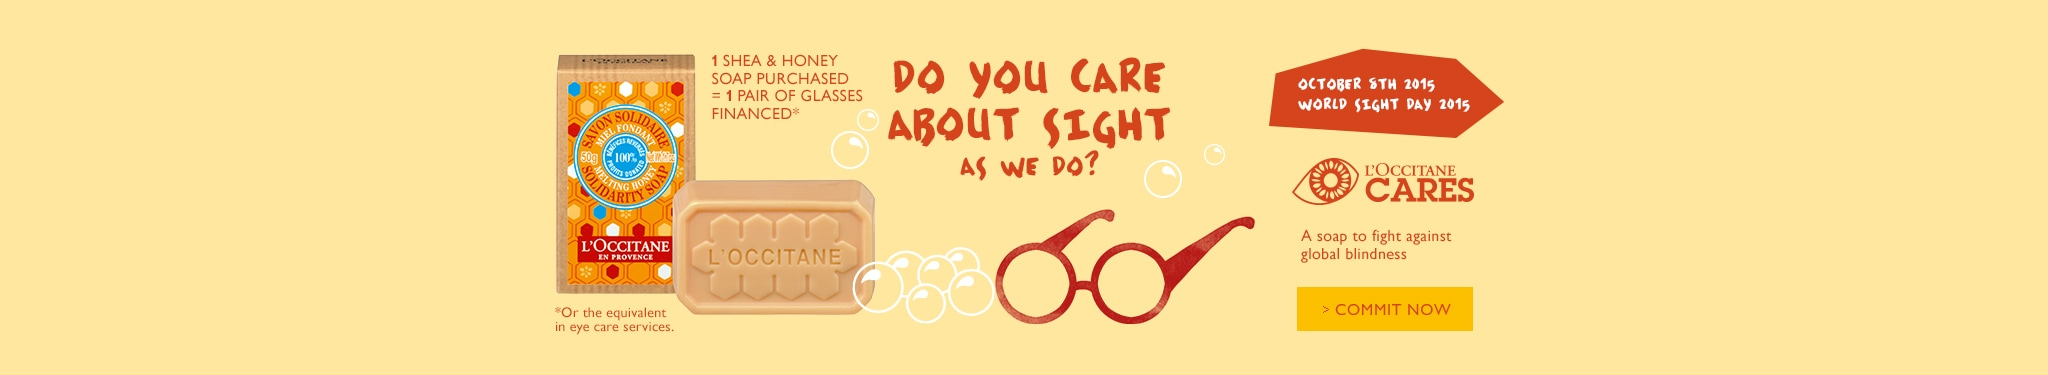 L'OCCITANE CARES ABOUT SIGHT